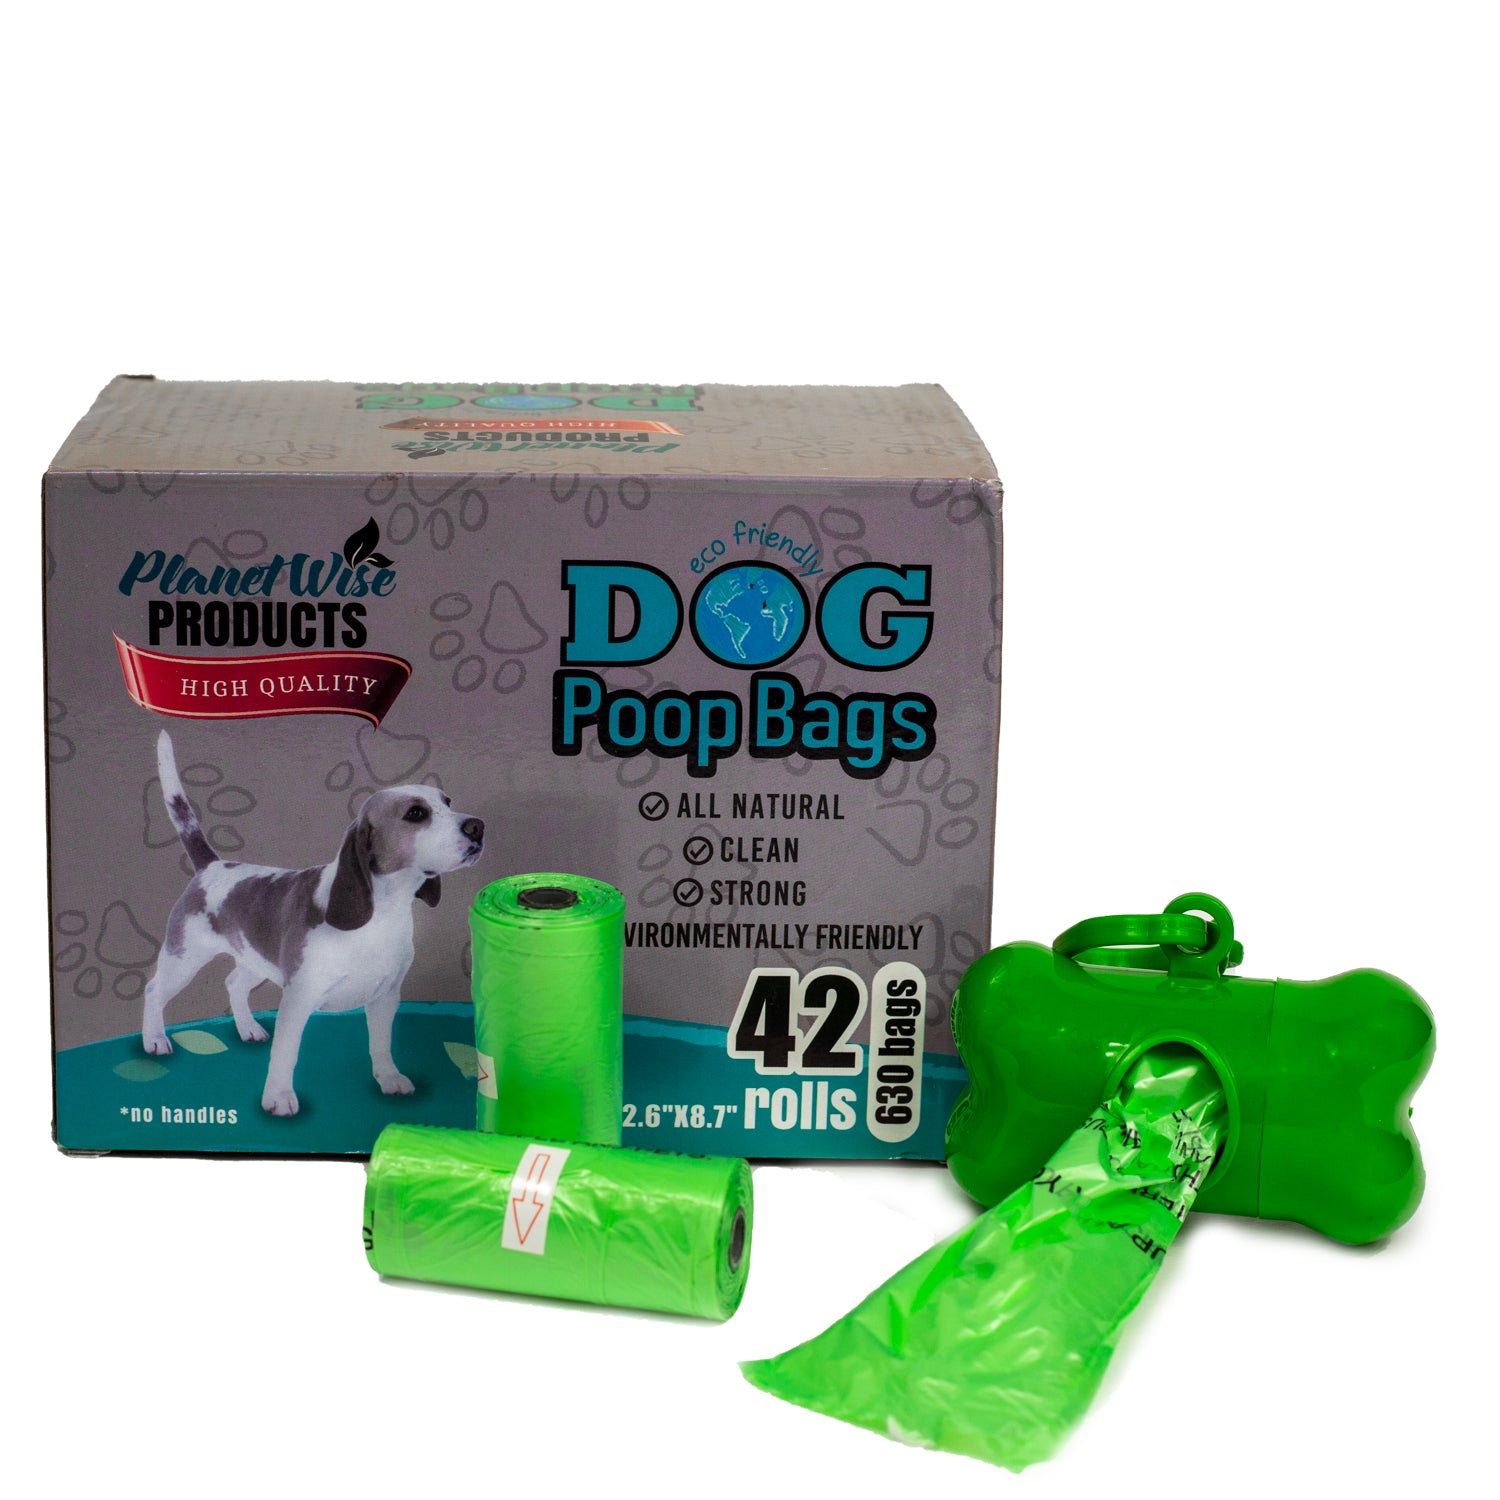 Planet Wise Dog Poop Bag